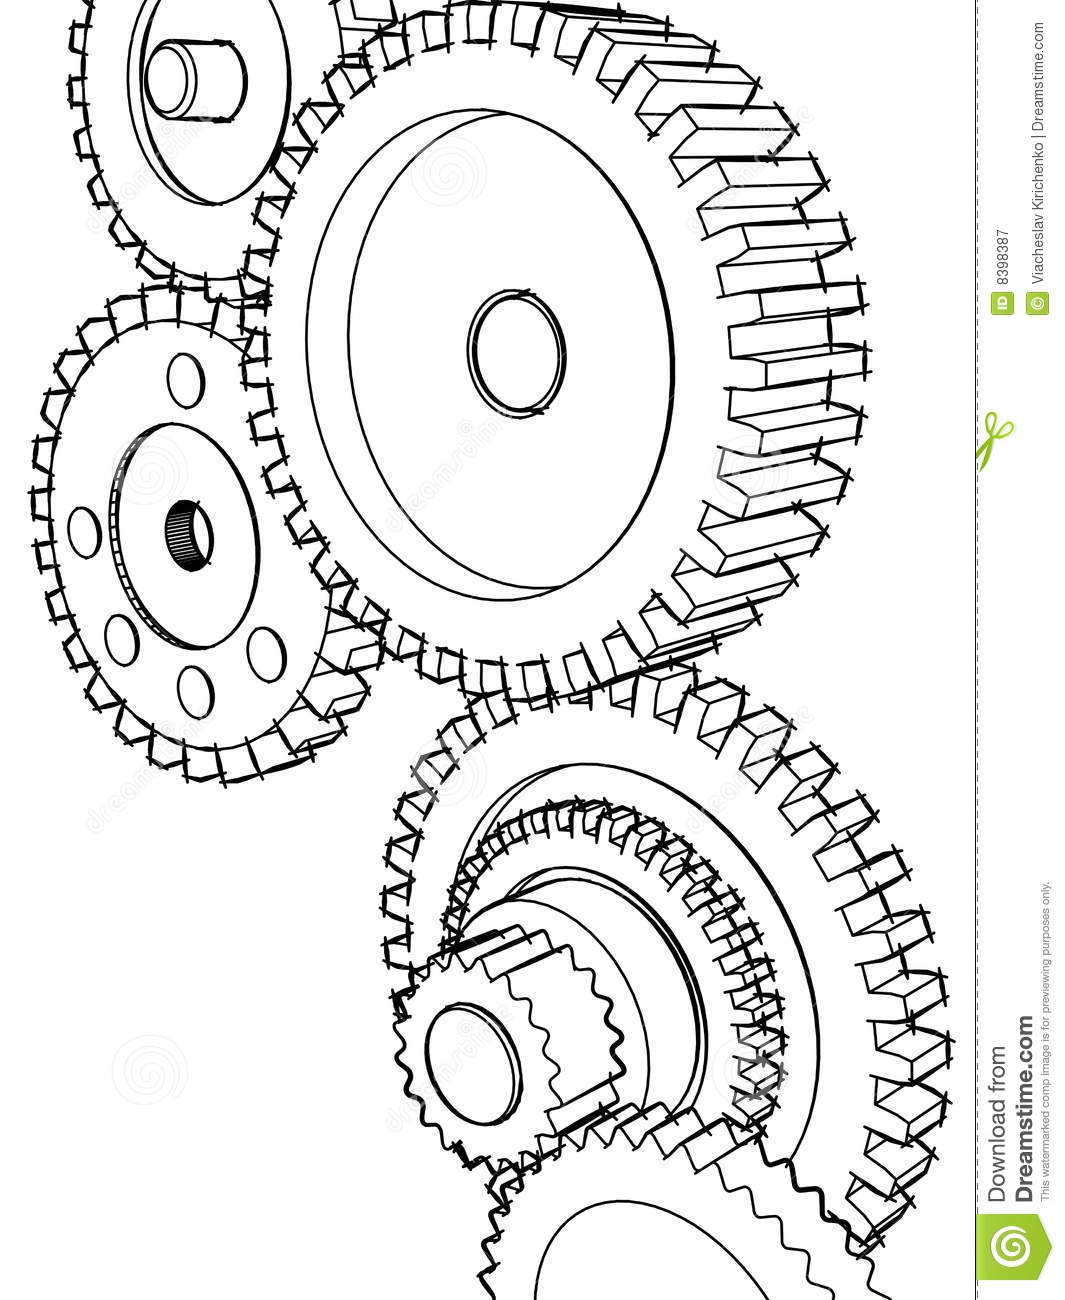 Sketch Gears Royalty Free Stock Photography